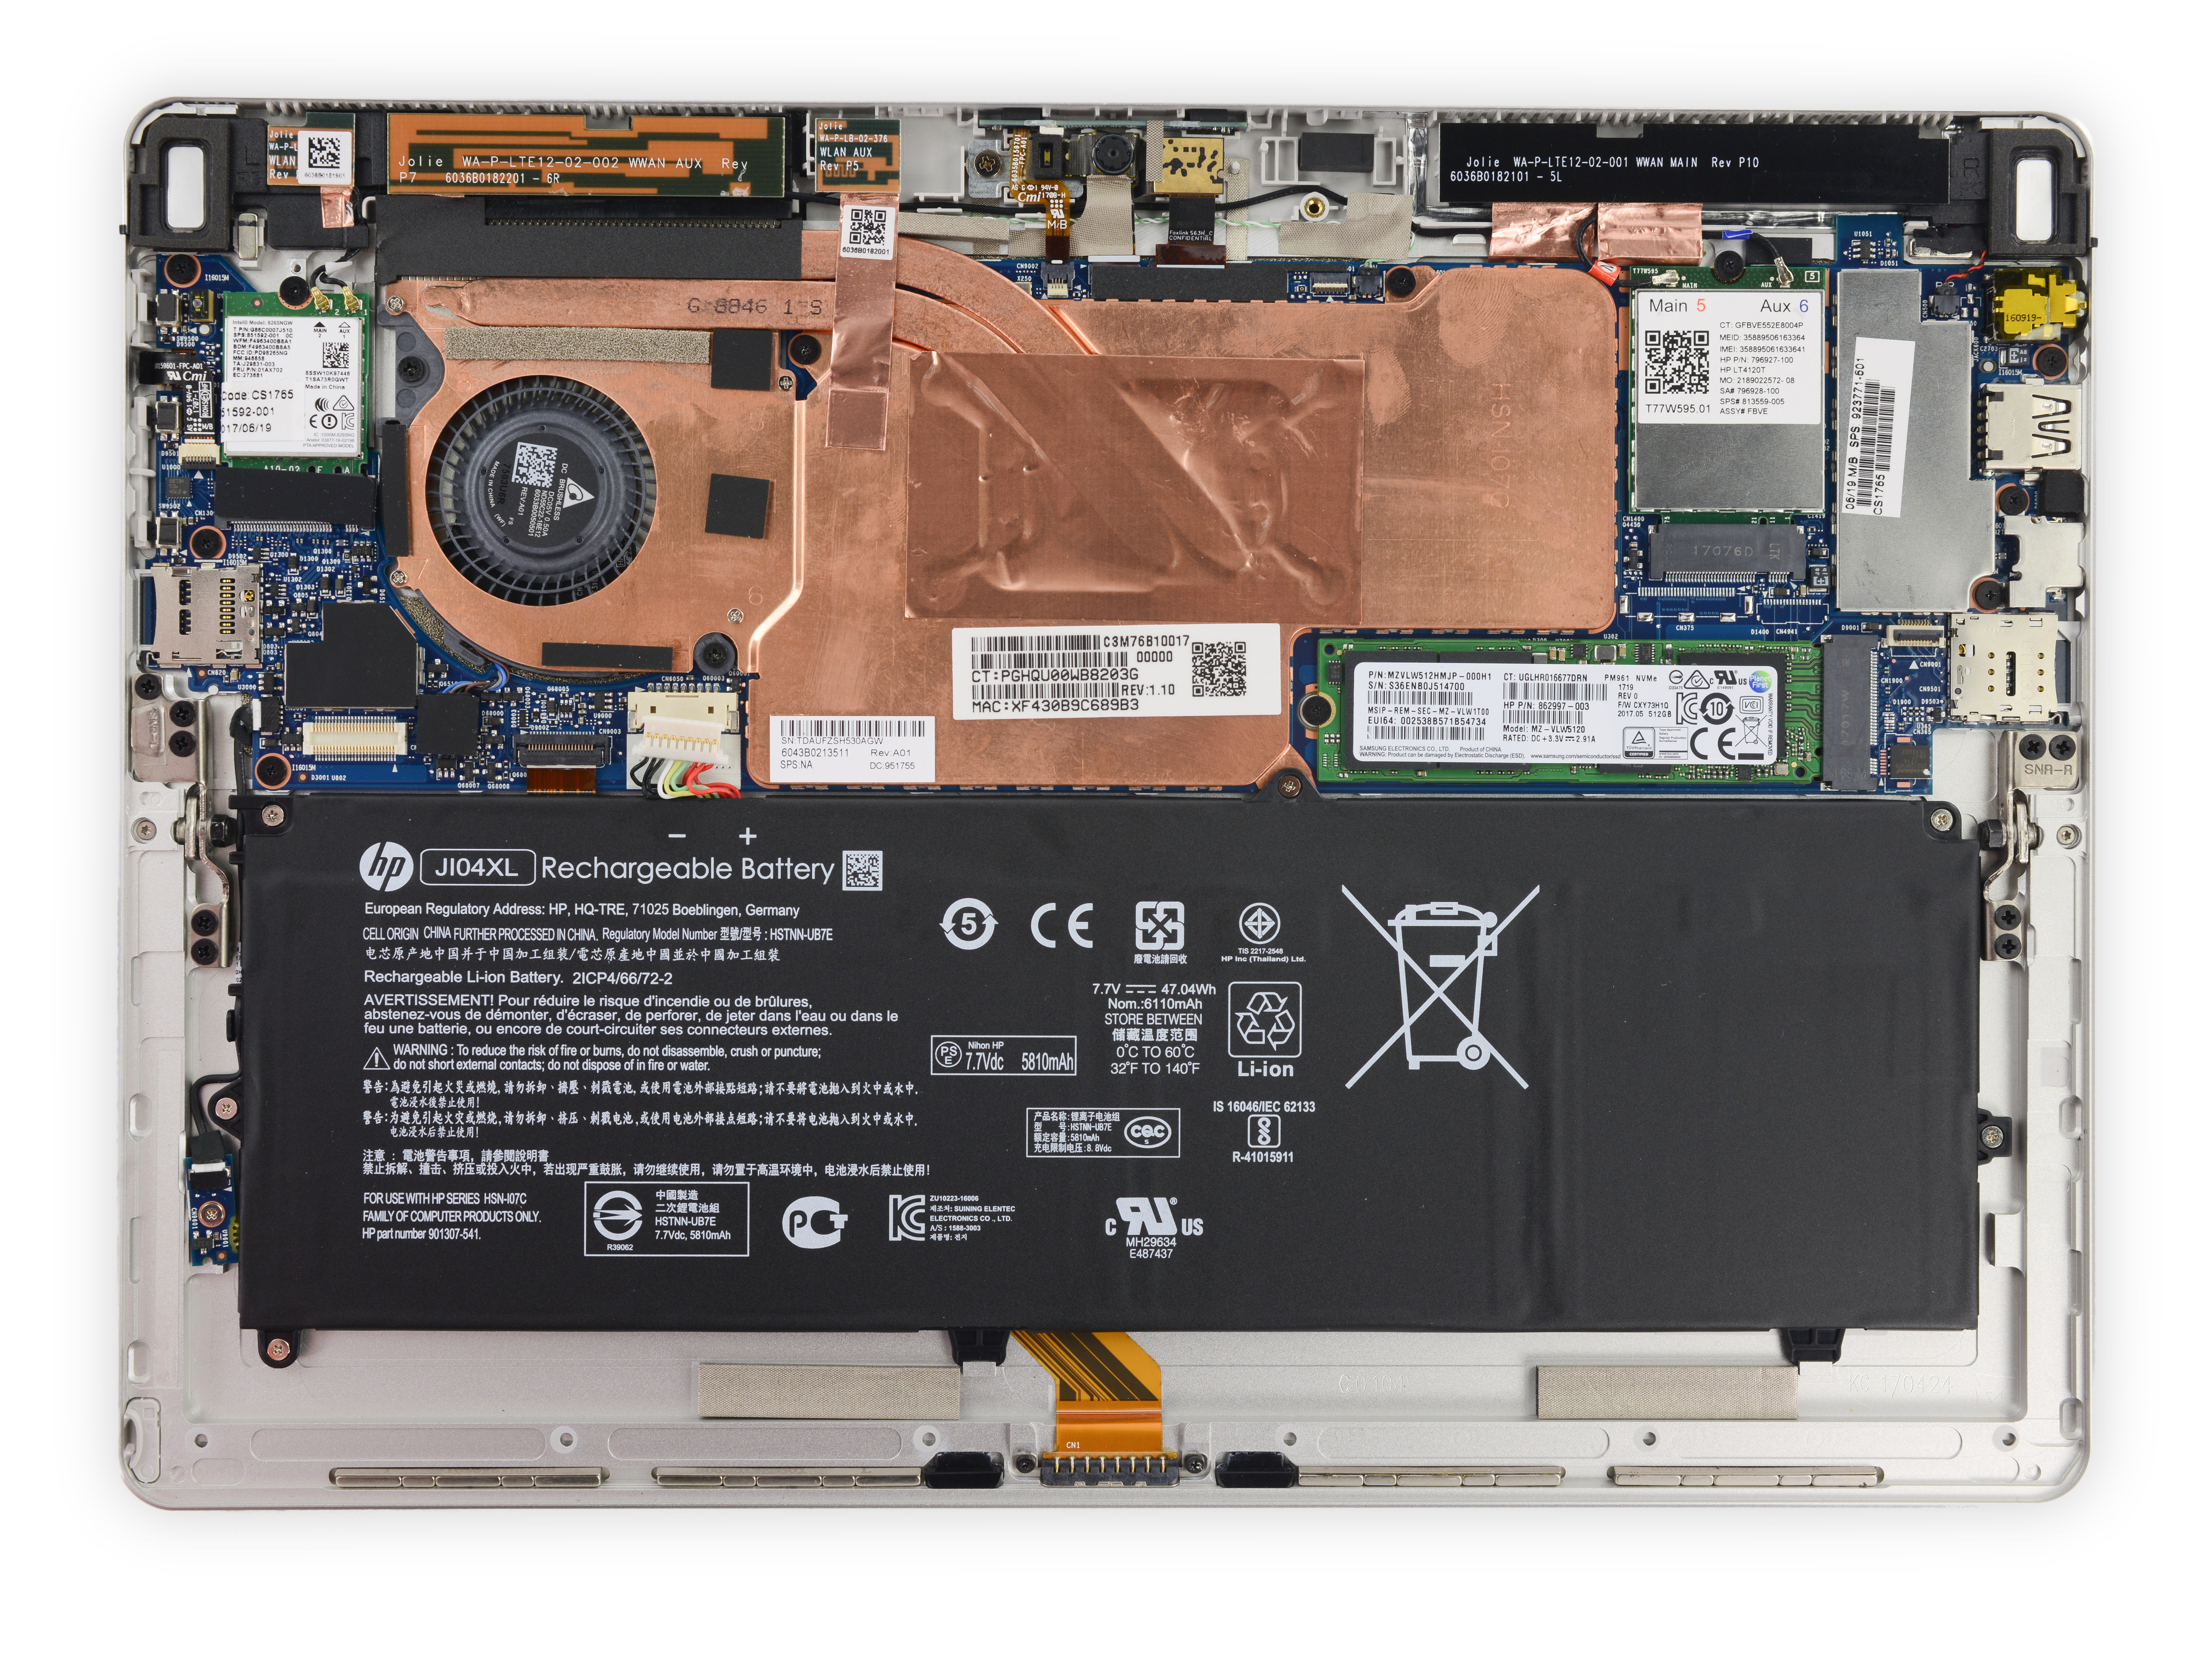 Industry News Page 14 Hp Elite X2 1012 G1 Tablet Energy Star Popping The Screen Off Reveals A Similar Layout To Last Years Model With Few Key Differences Right Bat We See That Has Added Separate